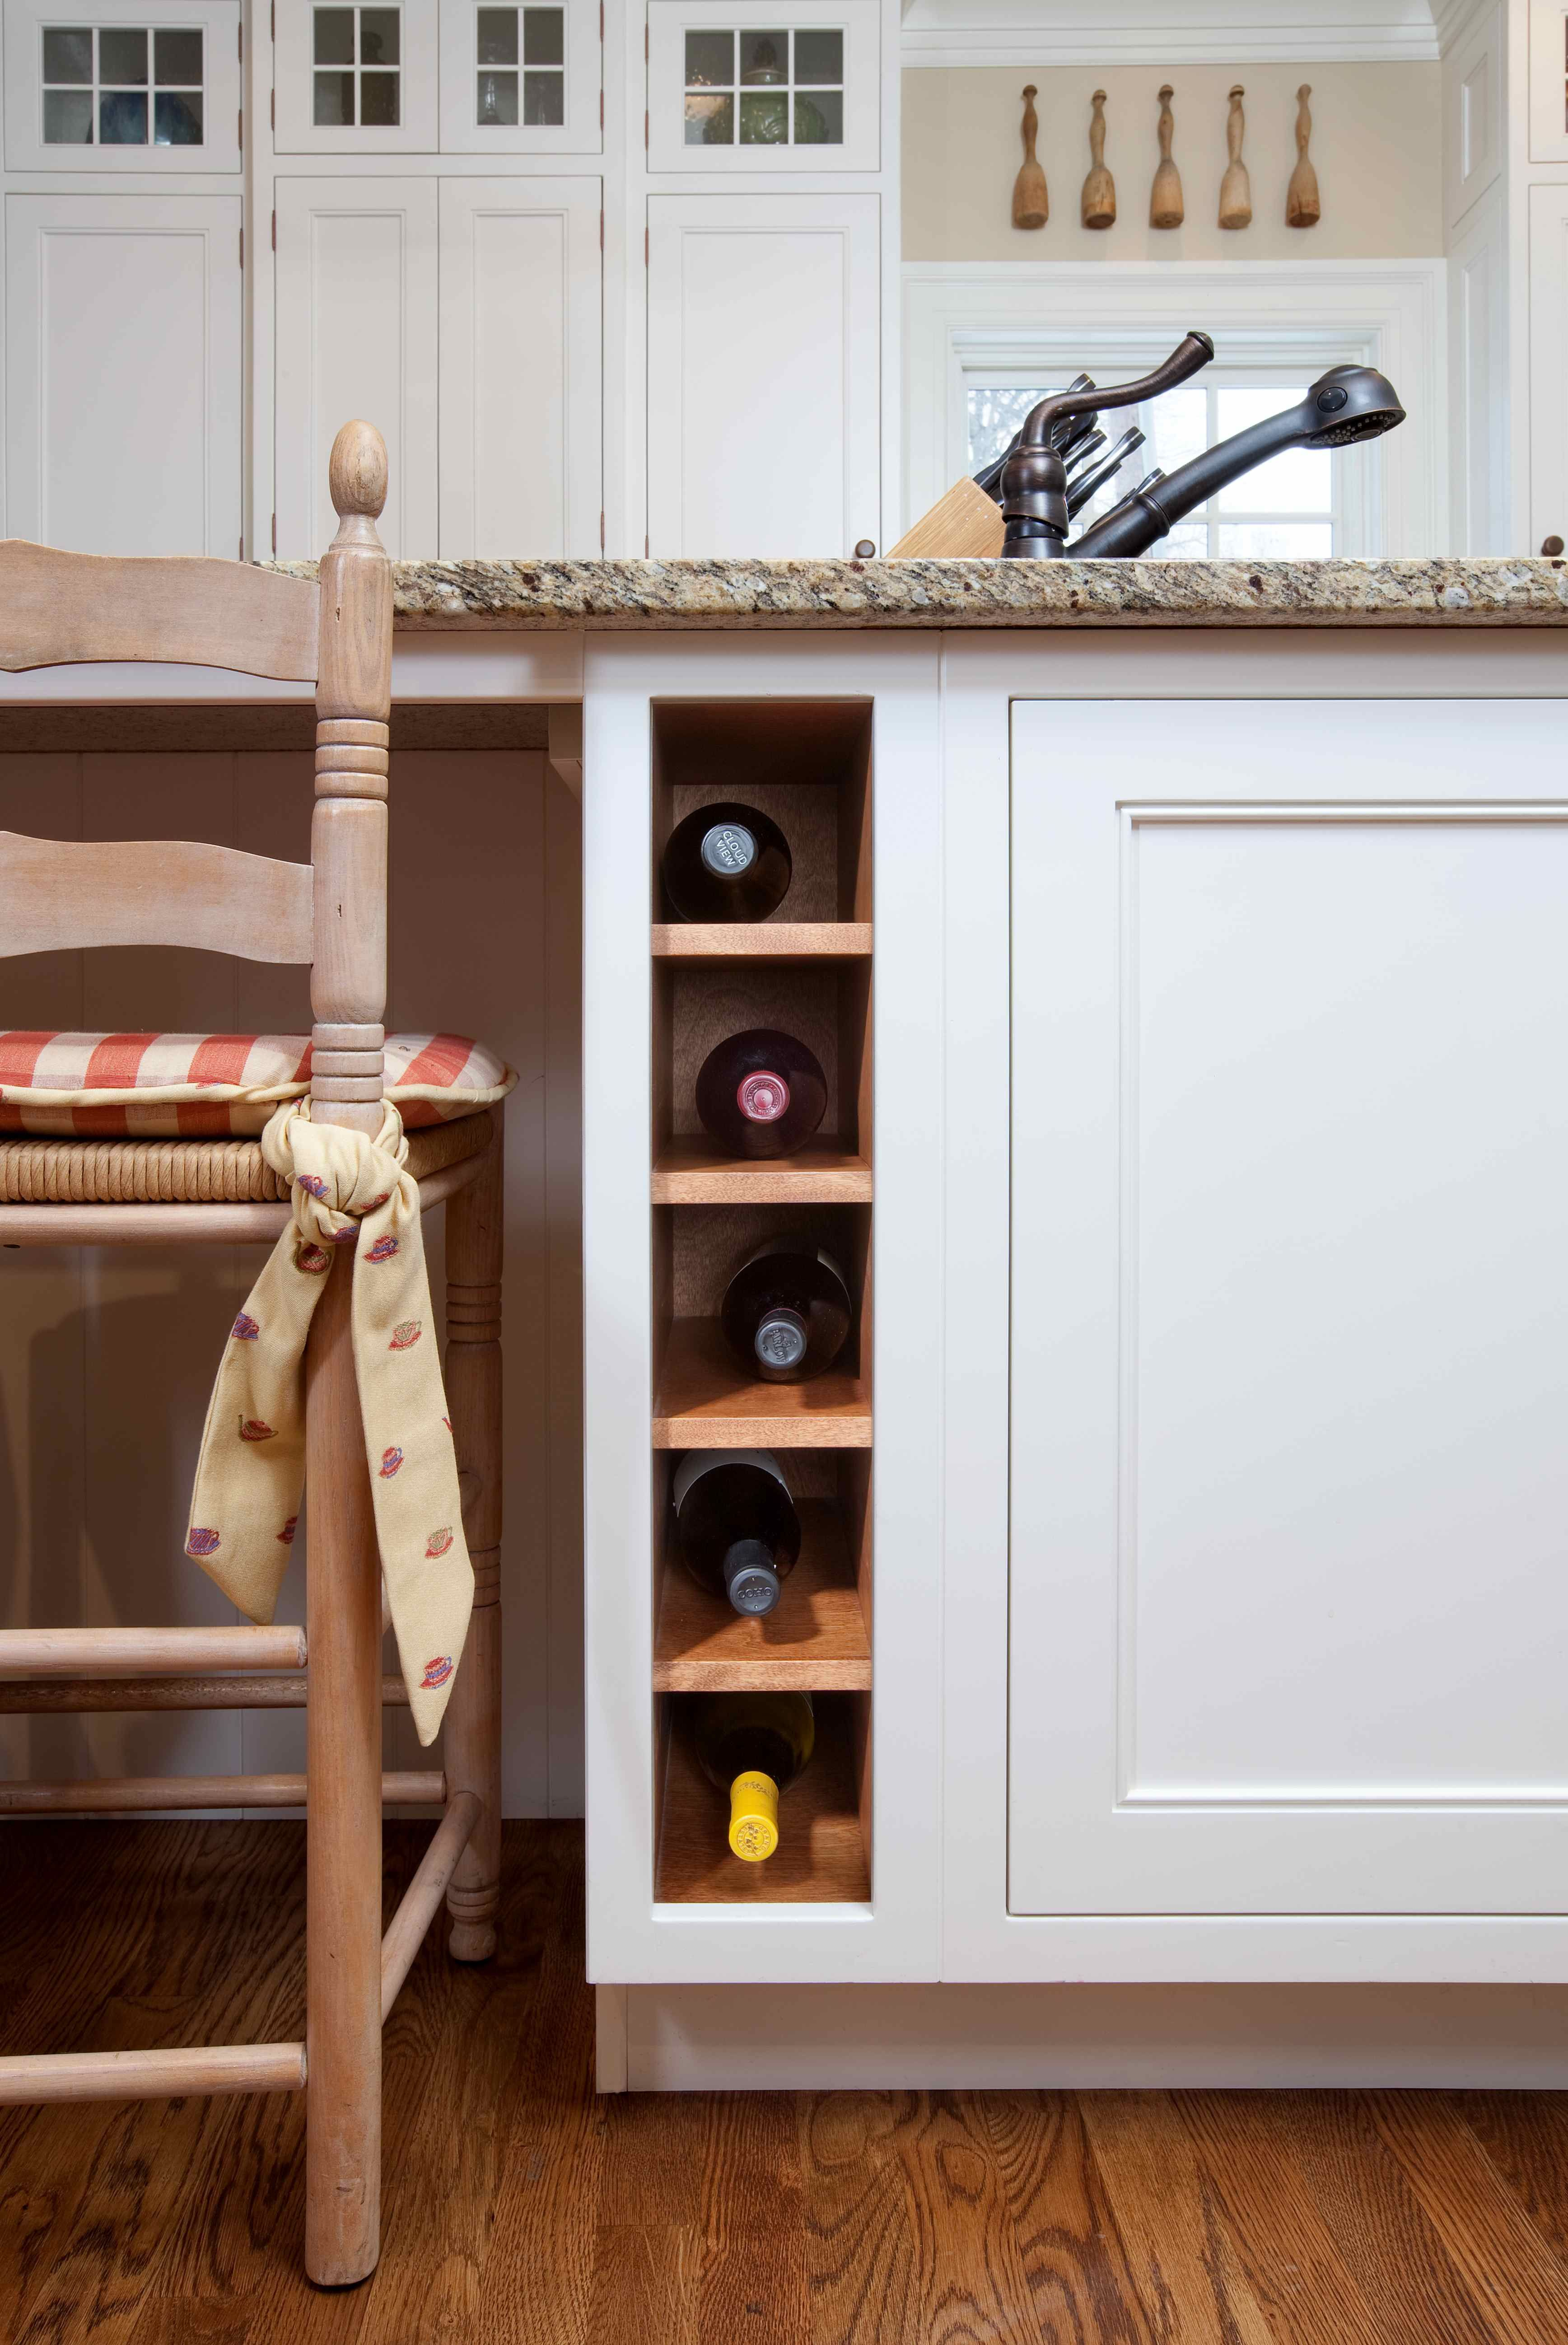 Westwood Cabinetry And Millwork Columbus Ohio Westwoodcabinetry Com Cabinet Door Styles Wine Storage Cabinetry